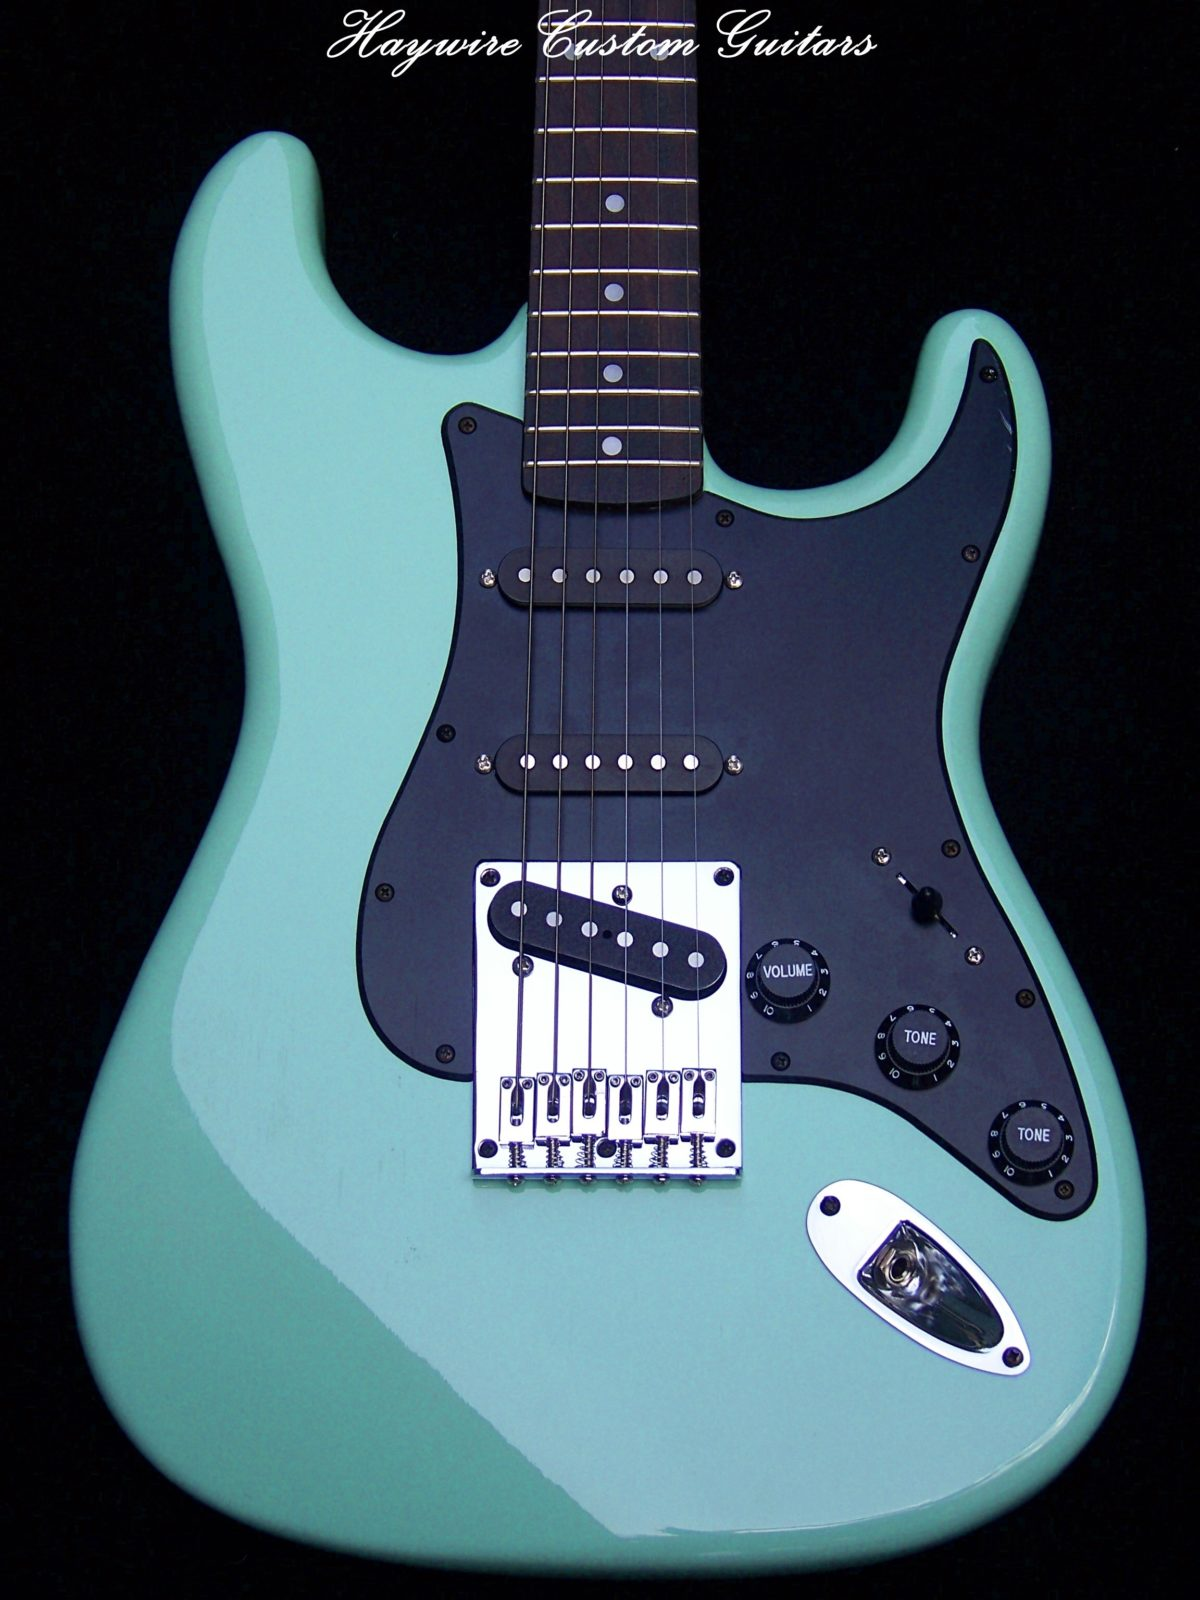 image Haywire Custom Guitars-Nashville Player-#1